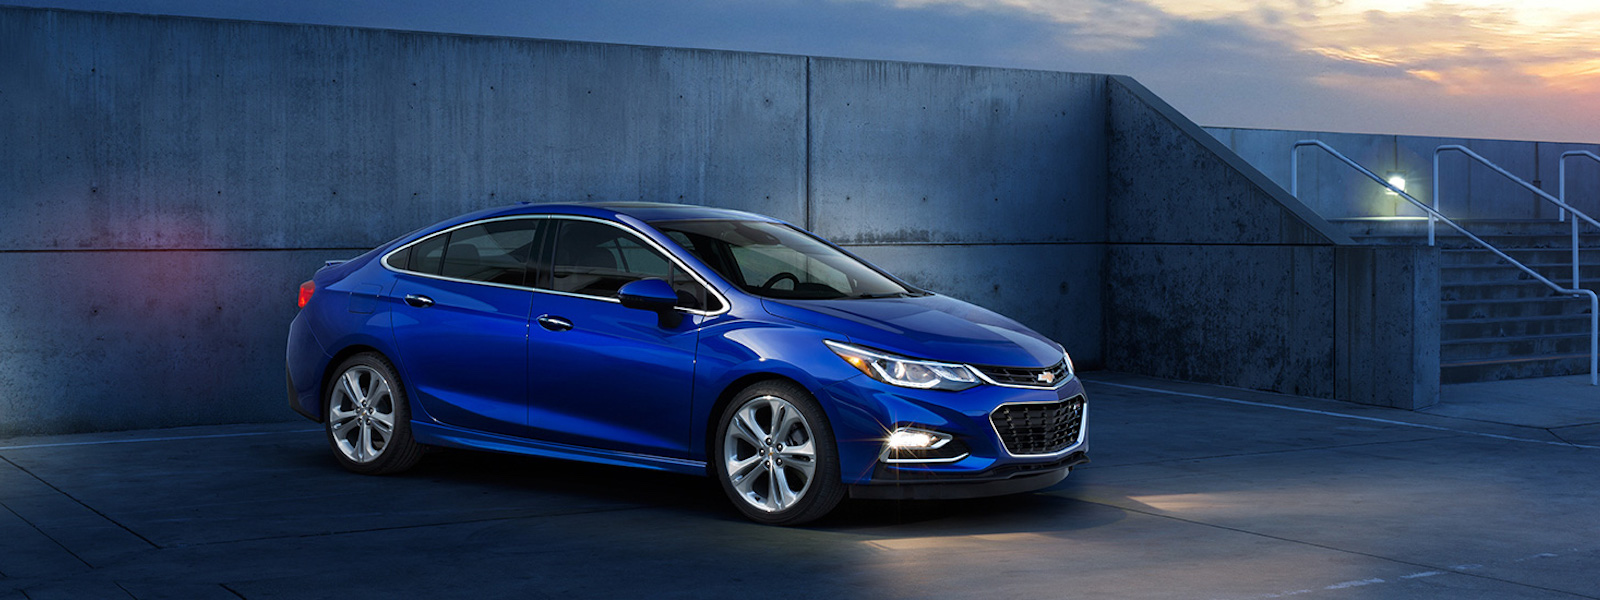 A blue 2016 Chevy Cruze is parked in front or a concrete wall at dusk.